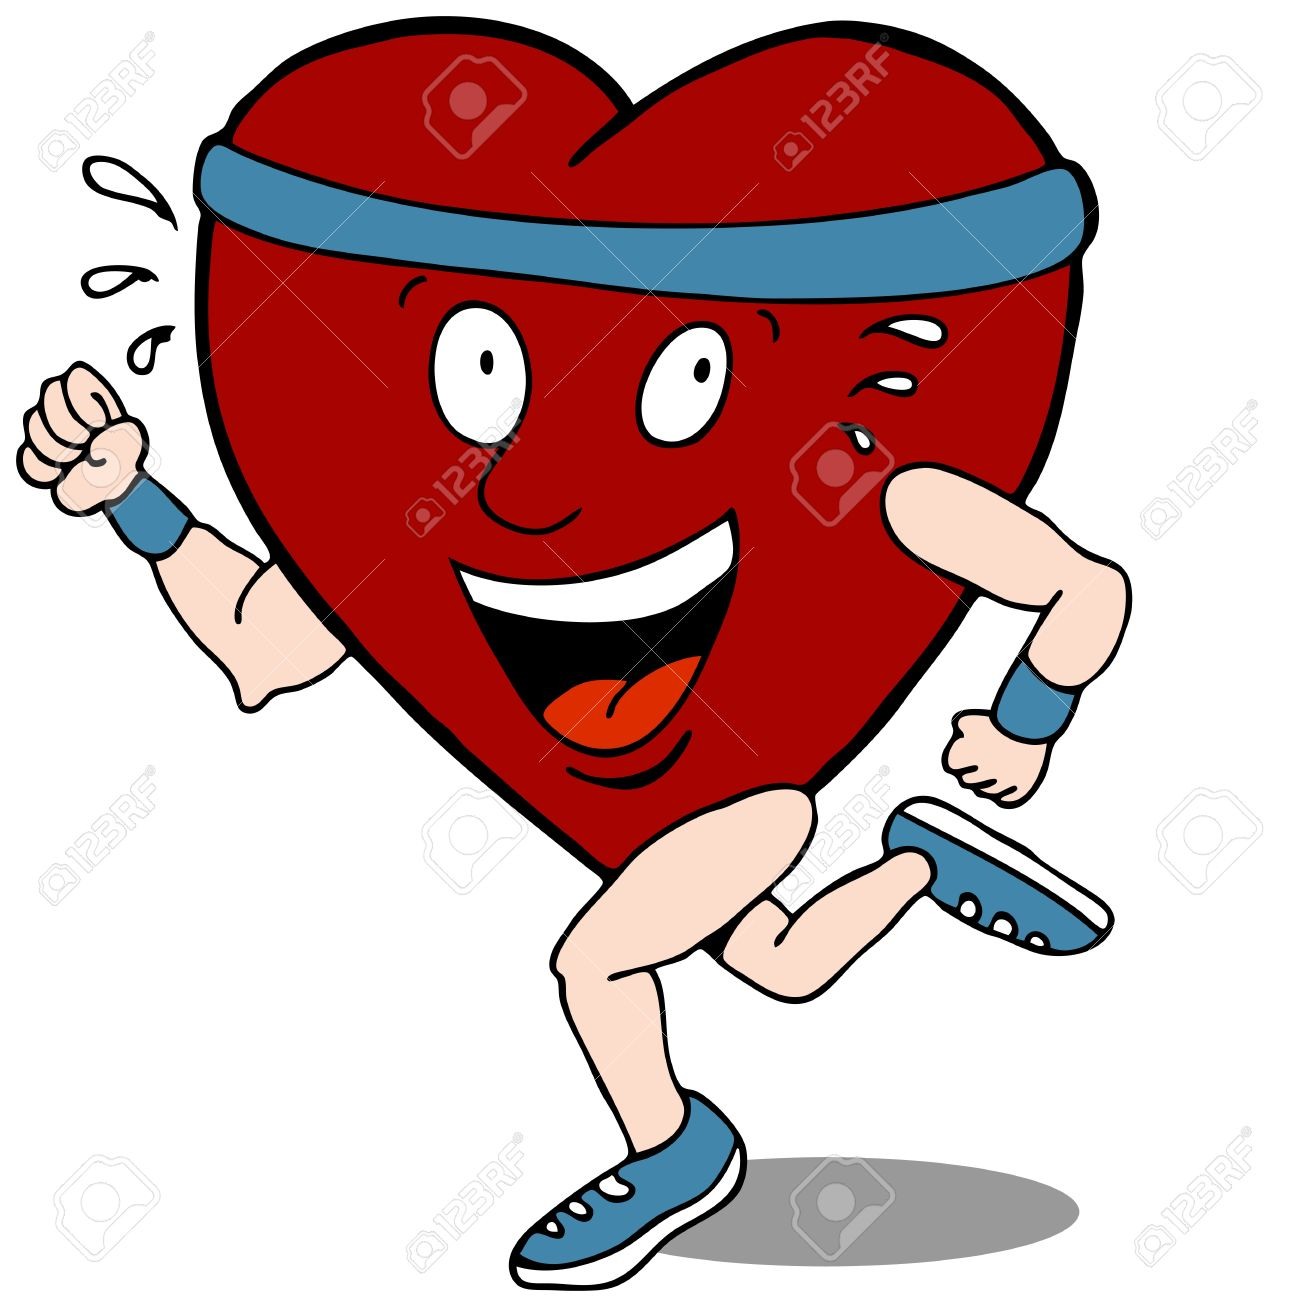 Healthy heart clipart free image library library Heart clip art exercise - 15 clip arts for free download on ... image library library